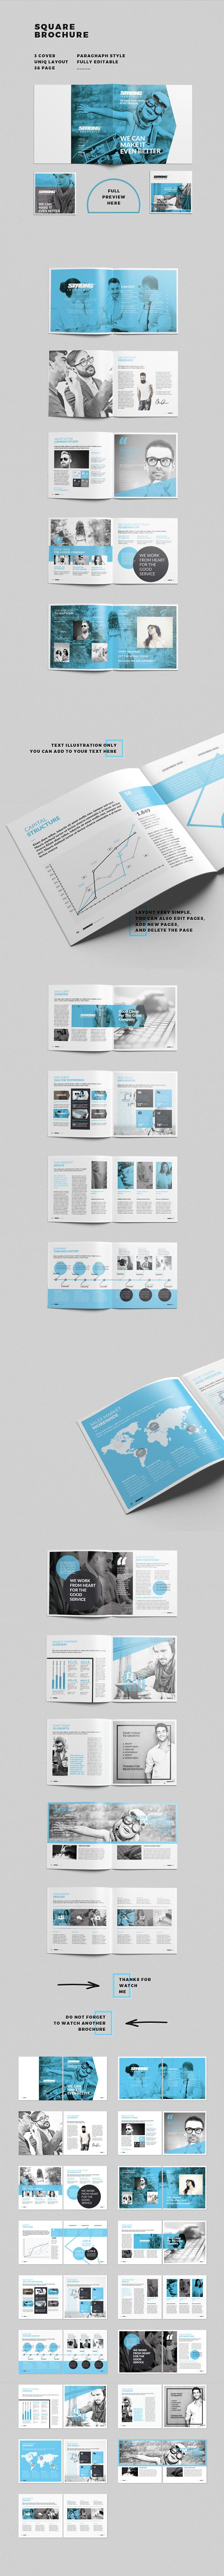 agency, brochure, brochure template, business, business brochure, catalog, catalogue, clean, colors, corporate, corporate brochure, corporate identity, customizable, customize, design, gray, green, indesign template, minimal, modern, multipurpose, PDF file, print template, professional, proposal, square brochure, Square business brochure, stationery, us letter